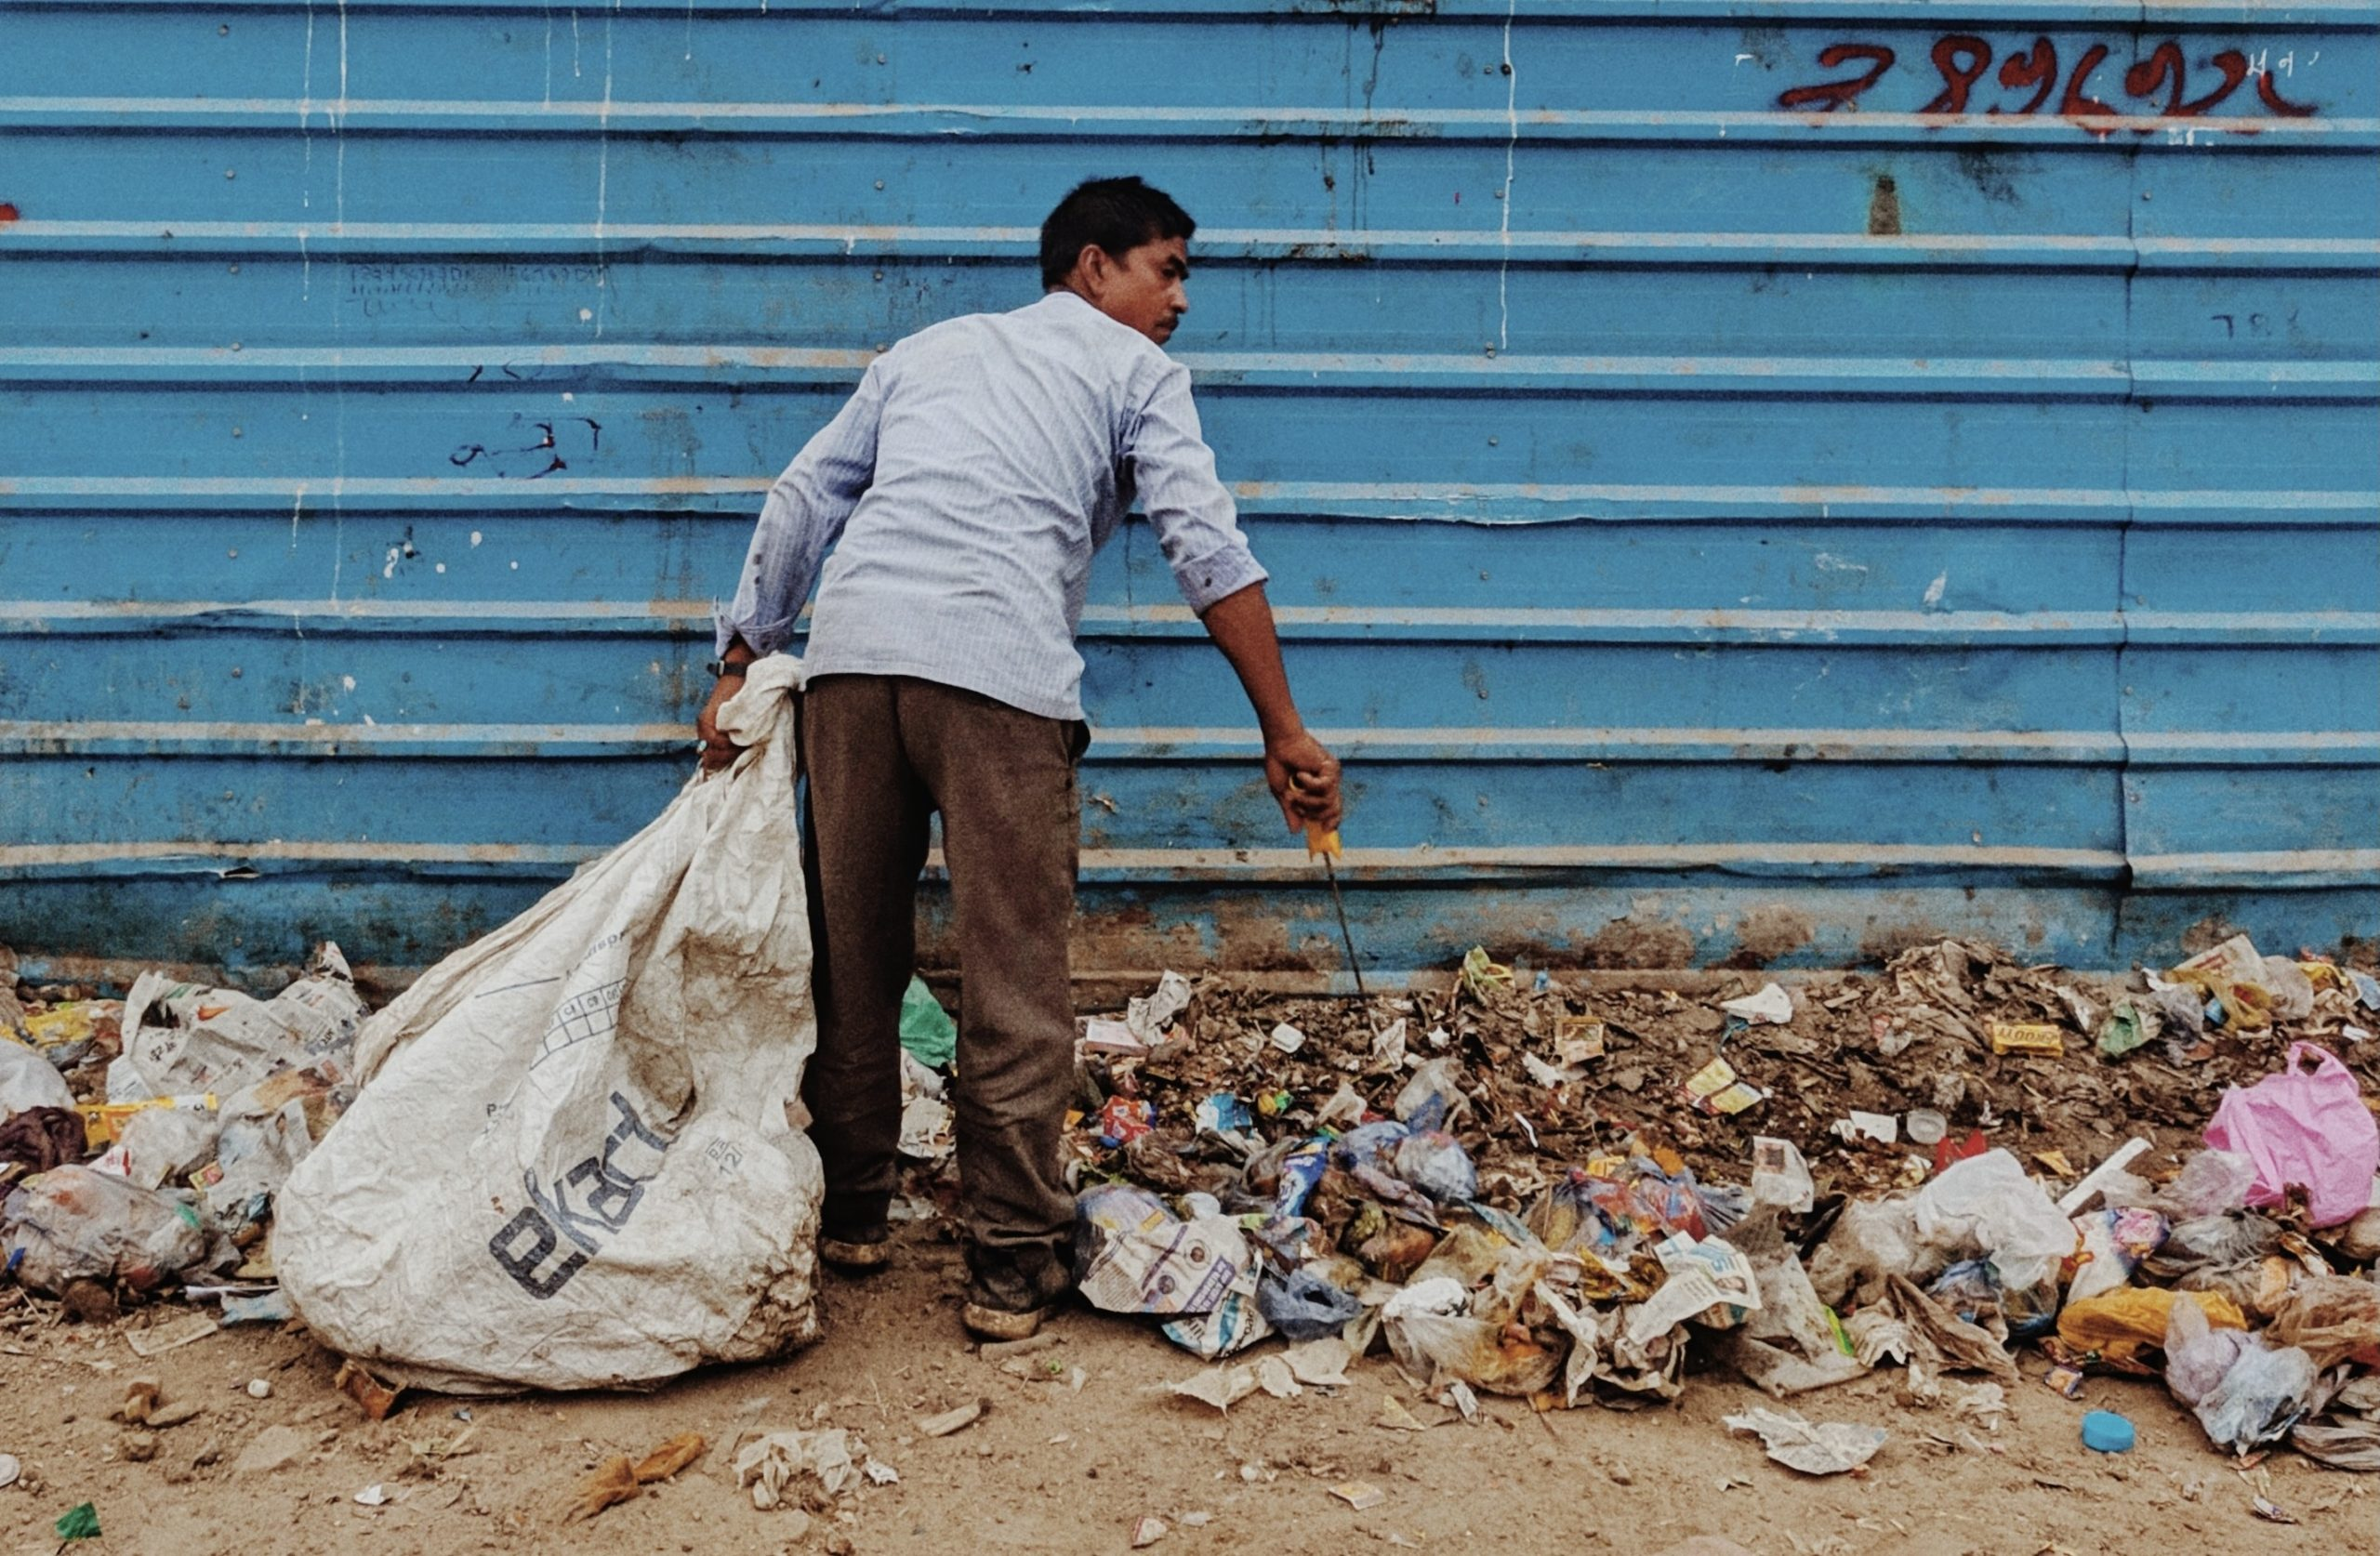 How Does Recycling Reduce Climate Change?